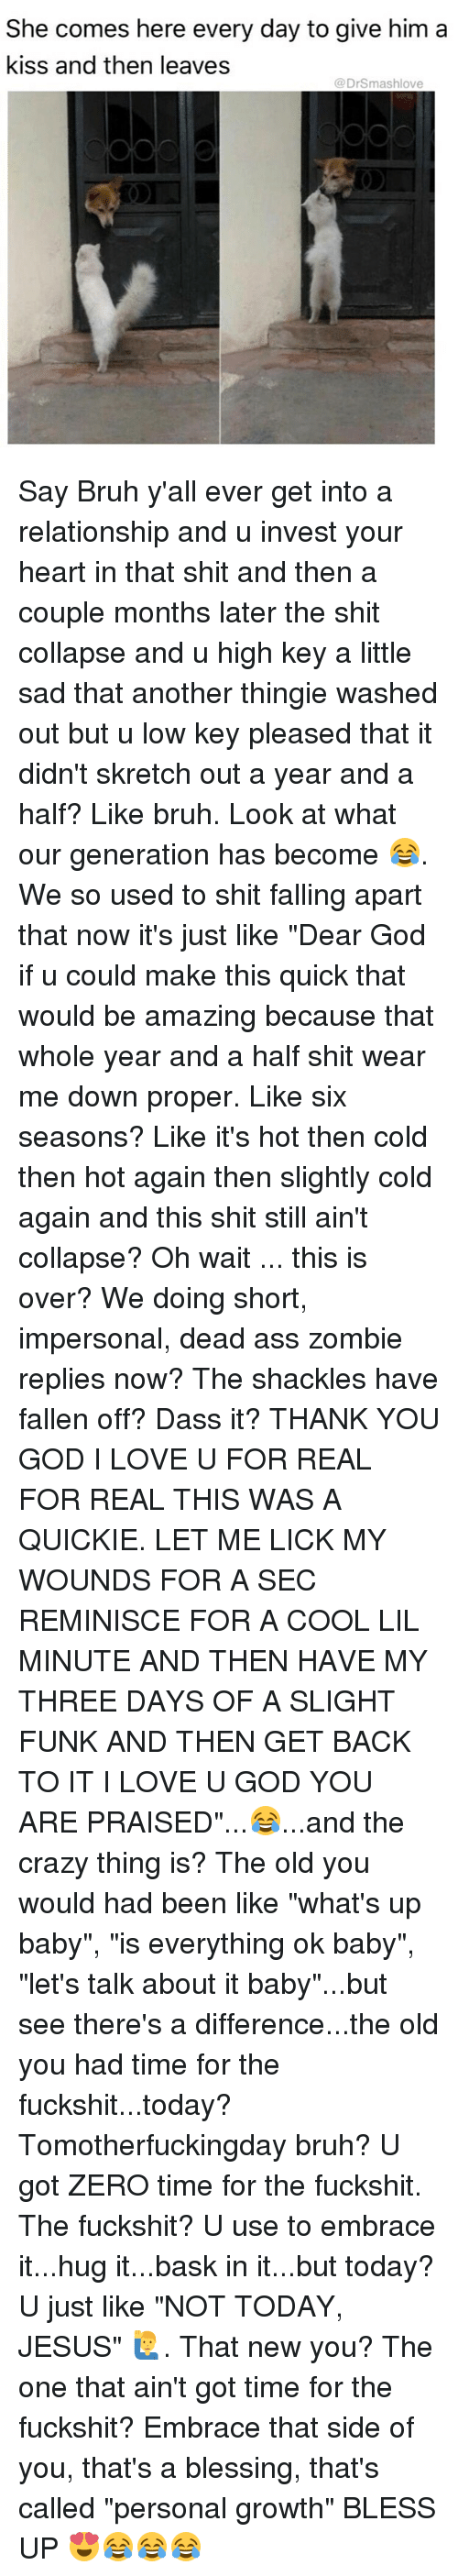 """Is Everything Ok: She comes here every day to give him a  kiss and then leaves  @DrSmashlove Say Bruh y'all ever get into a relationship and u invest your heart in that shit and then a couple months later the shit collapse and u high key a little sad that another thingie washed out but u low key pleased that it didn't skretch out a year and a half? Like bruh. Look at what our generation has become 😂. We so used to shit falling apart that now it's just like """"Dear God if u could make this quick that would be amazing because that whole year and a half shit wear me down proper. Like six seasons? Like it's hot then cold then hot again then slightly cold again and this shit still ain't collapse? Oh wait ... this is over? We doing short, impersonal, dead ass zombie replies now? The shackles have fallen off? Dass it? THANK YOU GOD I LOVE U FOR REAL FOR REAL THIS WAS A QUICKIE. LET ME LICK MY WOUNDS FOR A SEC REMINISCE FOR A COOL LIL MINUTE AND THEN HAVE MY THREE DAYS OF A SLIGHT FUNK AND THEN GET BACK TO IT I LOVE U GOD YOU ARE PRAISED""""...😂...and the crazy thing is? The old you would had been like """"what's up baby"""", """"is everything ok baby"""", """"let's talk about it baby""""...but see there's a difference...the old you had time for the fuckshit...today? Tomotherfuckingday bruh? U got ZERO time for the fuckshit. The fuckshit? U use to embrace it...hug it...bask in it...but today? U just like """"NOT TODAY, JESUS"""" 🙋♂️. That new you? The one that ain't got time for the fuckshit? Embrace that side of you, that's a blessing, that's called """"personal growth"""" BLESS UP 😍😂😂😂"""